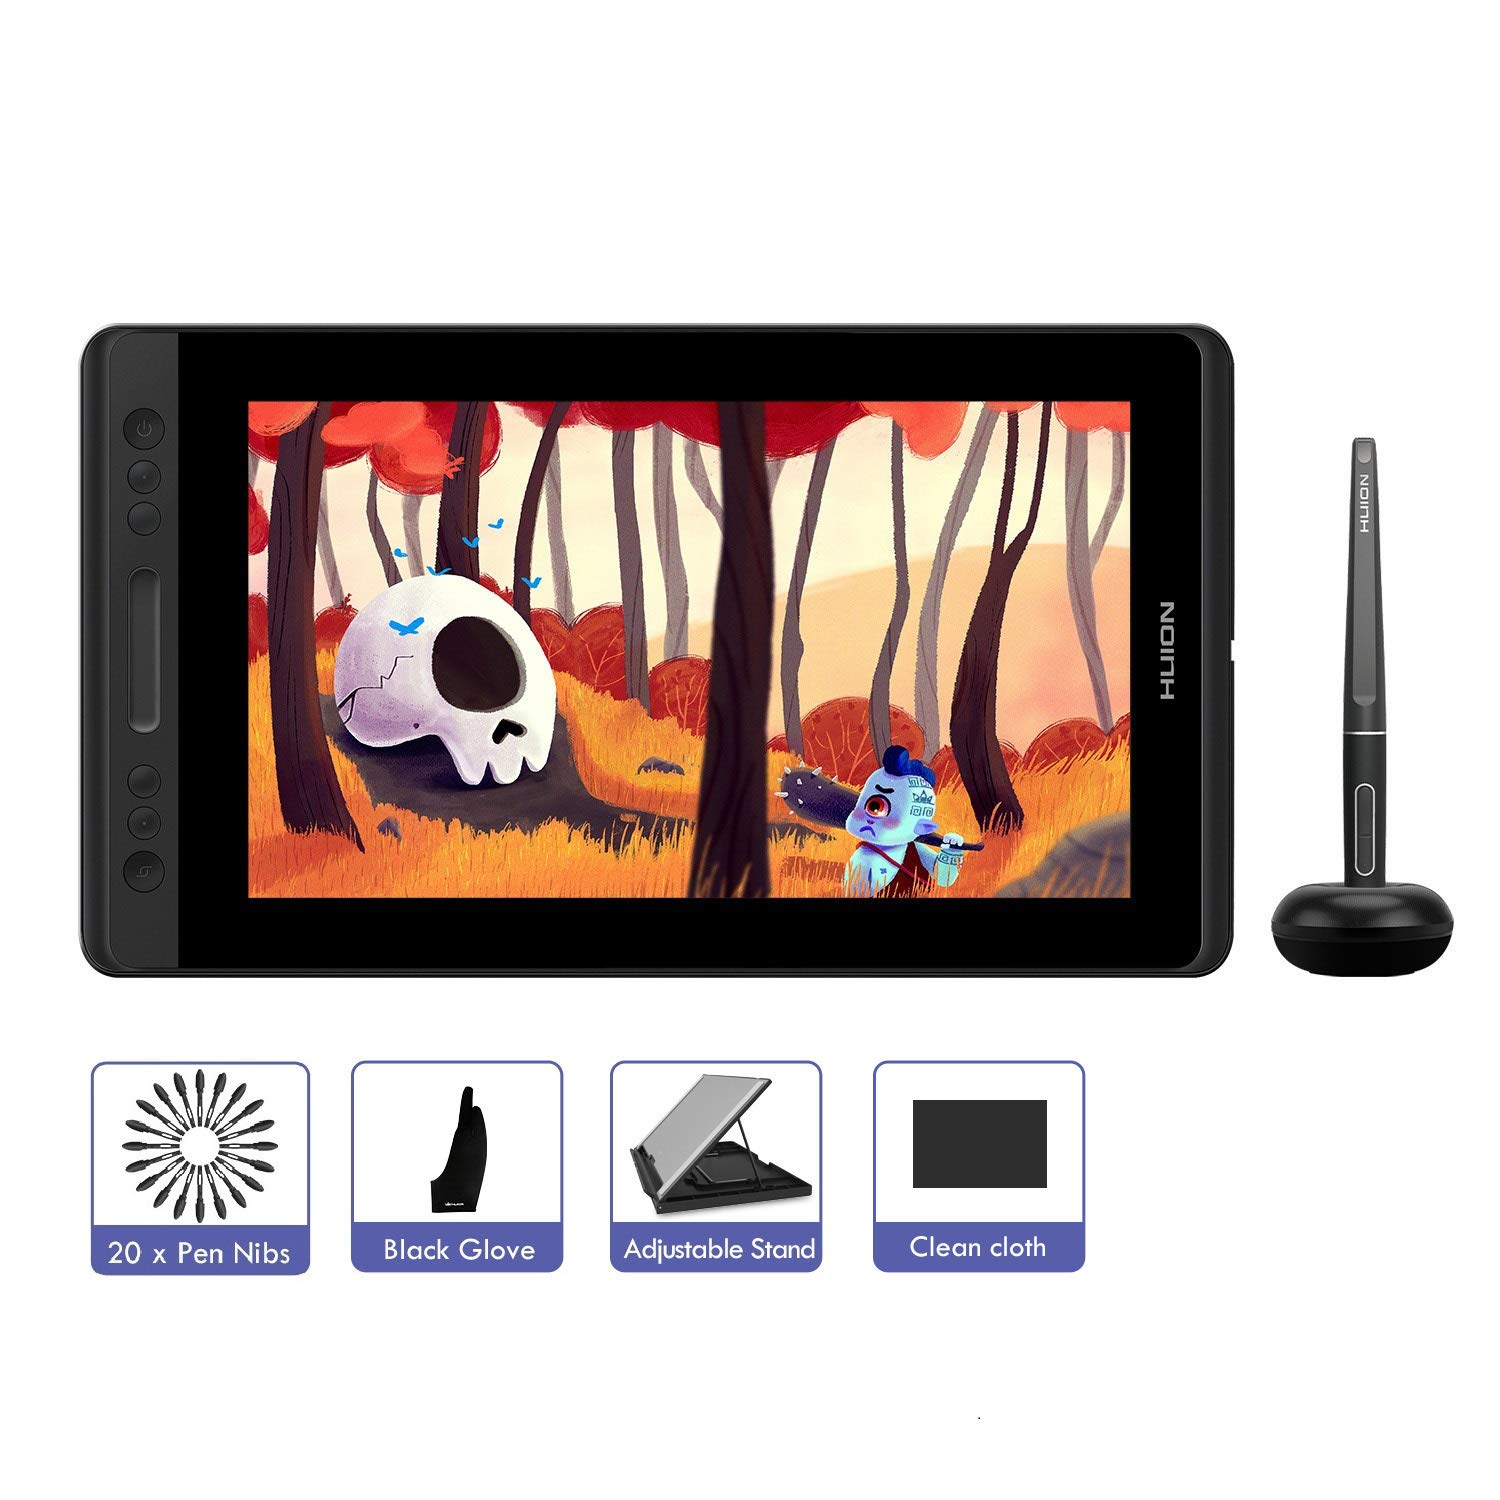 GT-133 HUION KAMVAS Pro 13 Drawing Tablet 8192 Pressure Sensitivity,Tilt Function Battery-Free Stylus Digital Drawing Monitor for Windows Mac 13.3inch Graphics Tablet with Screen